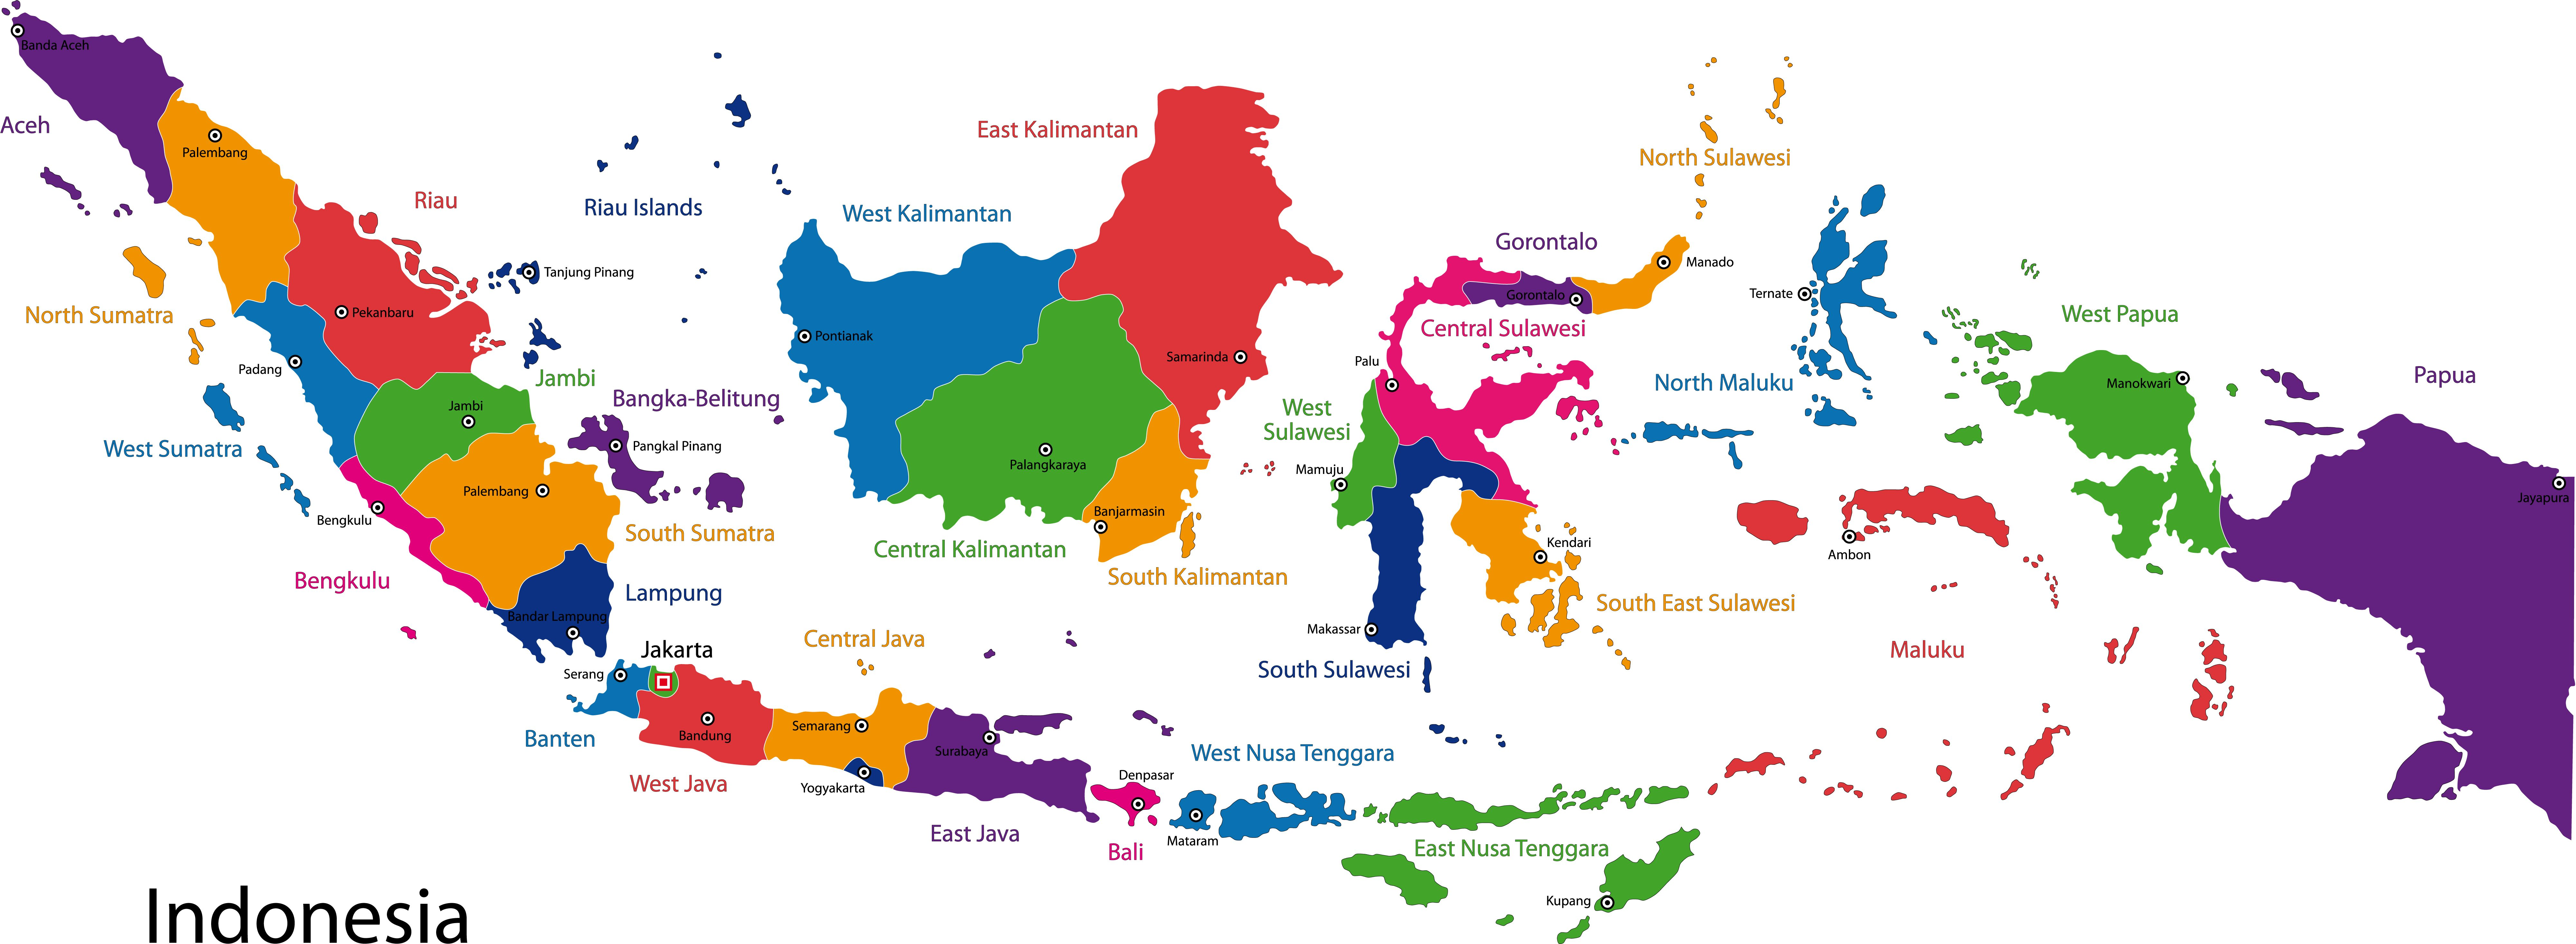 chinas growing ties with indonesian provinces - China's Growing Ties With Indonesian Provinces